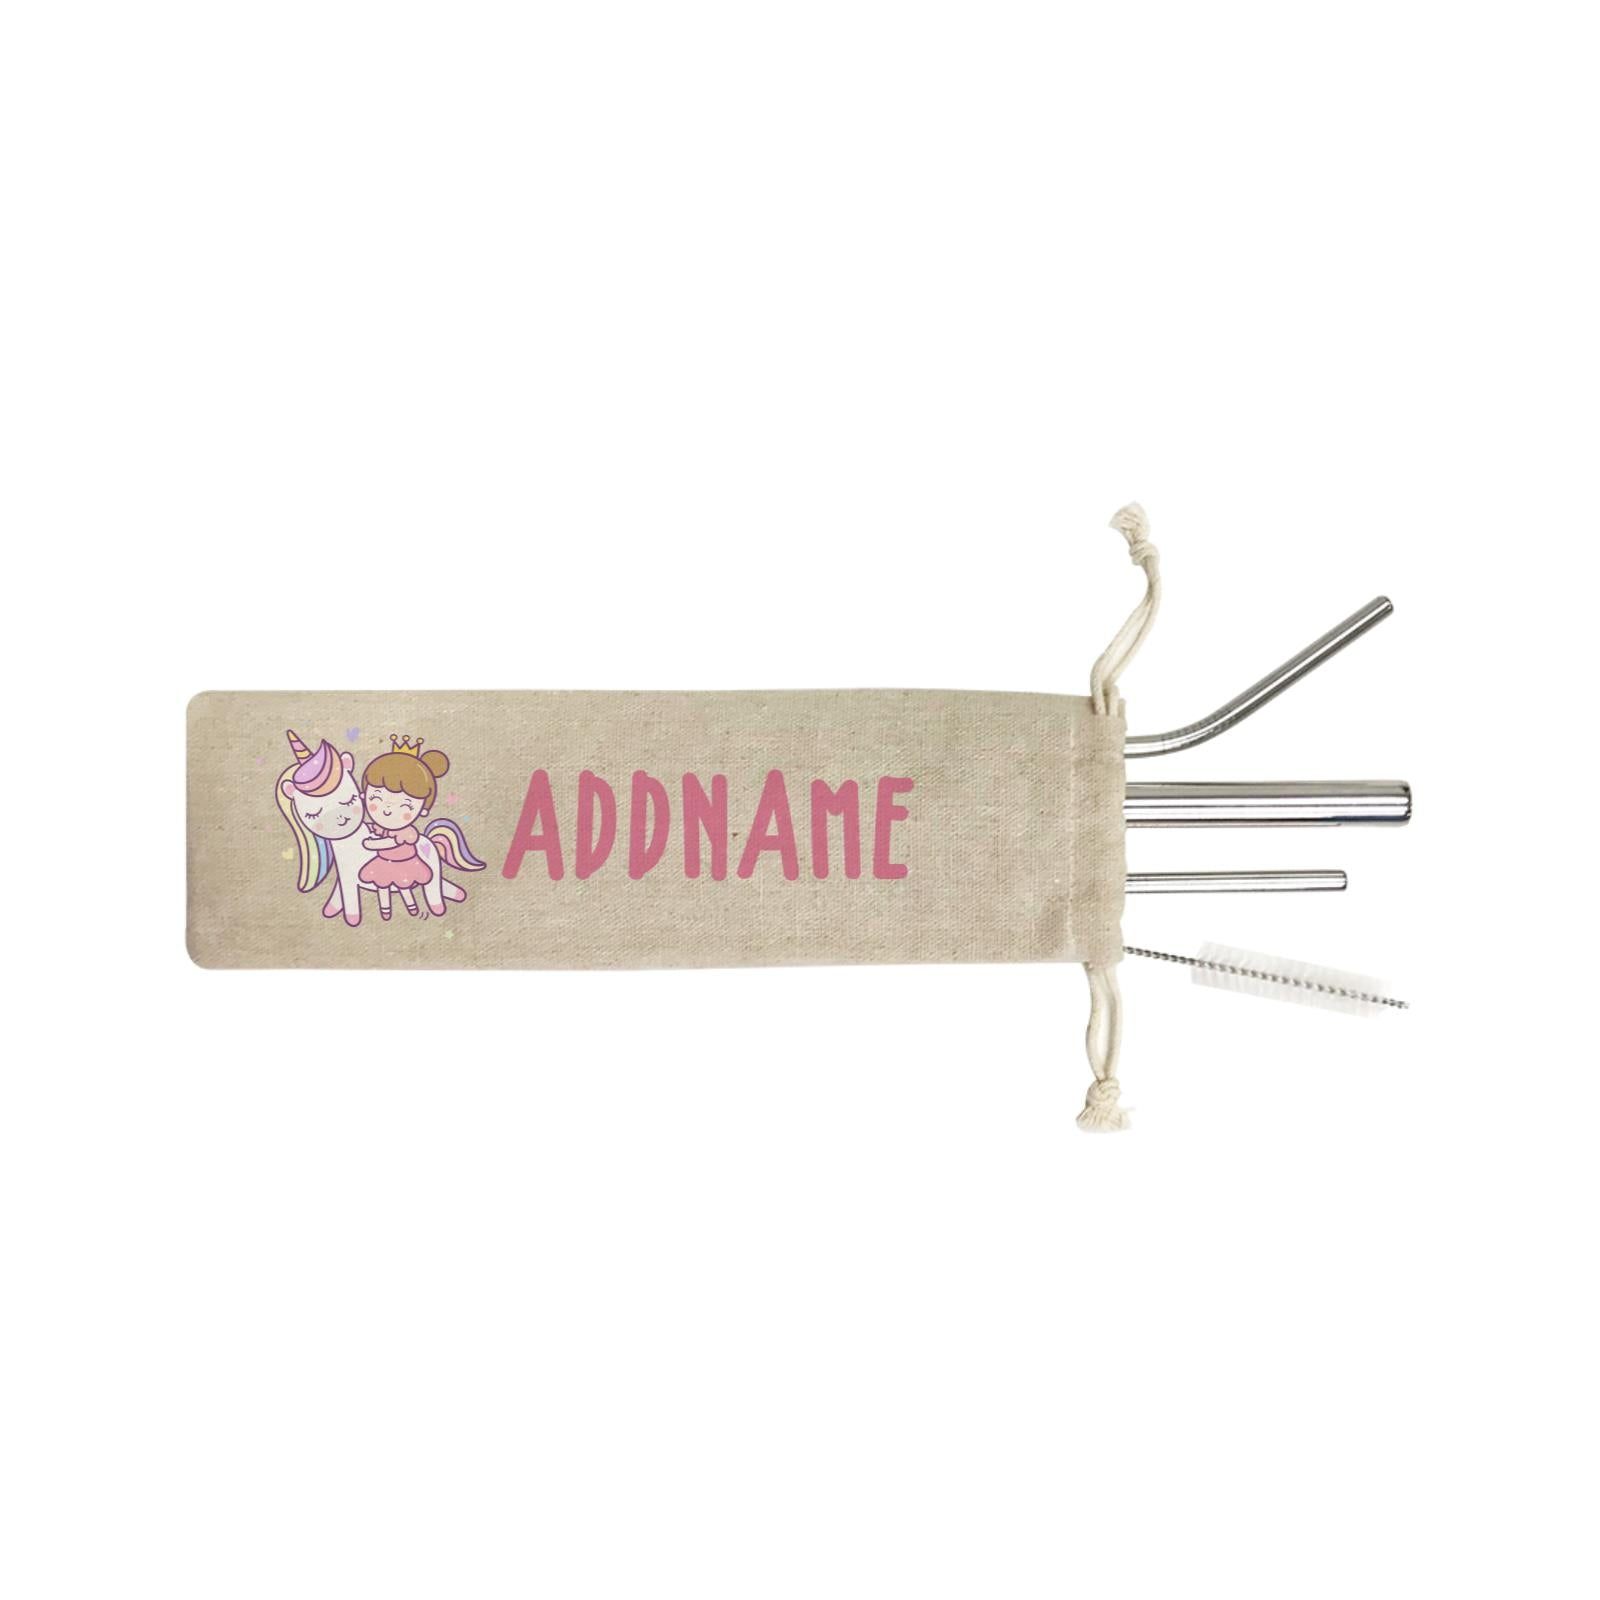 Unicorn And Princess Series Cute Unicorn With Princess Addname SB 4-In-1 Stainless Steel Straw Set in Satchel